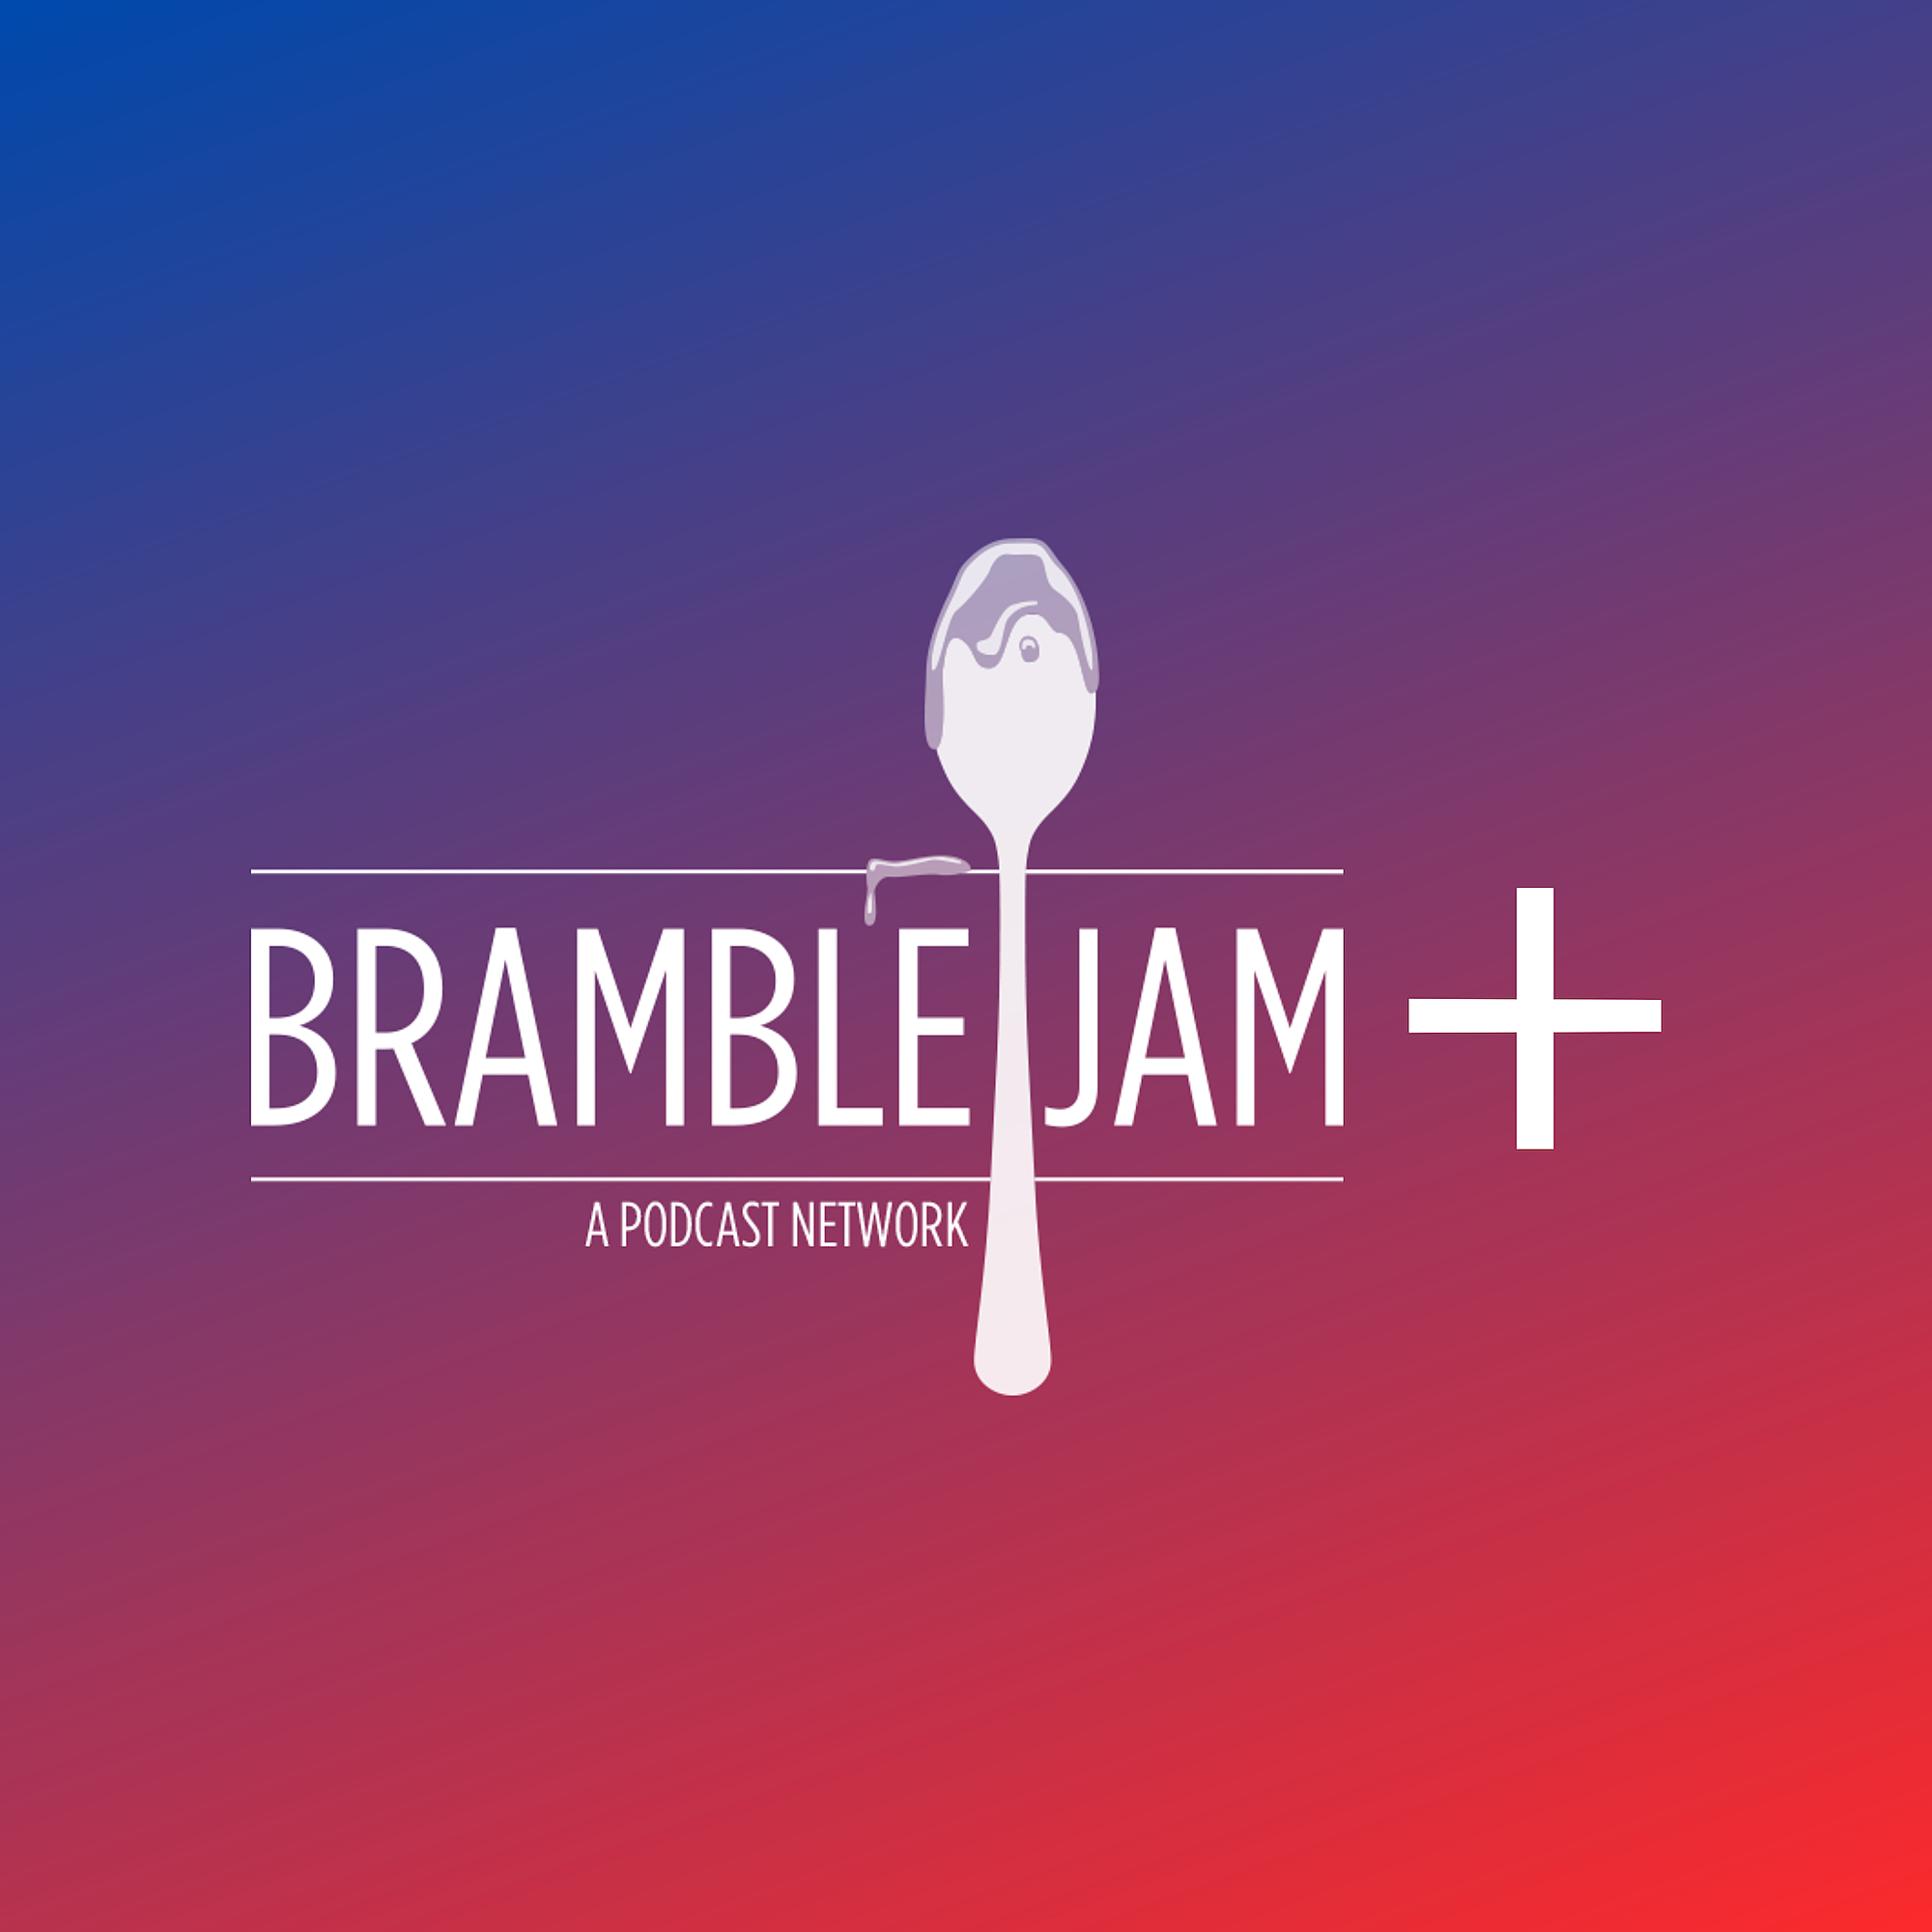 Bramble Jam Plus